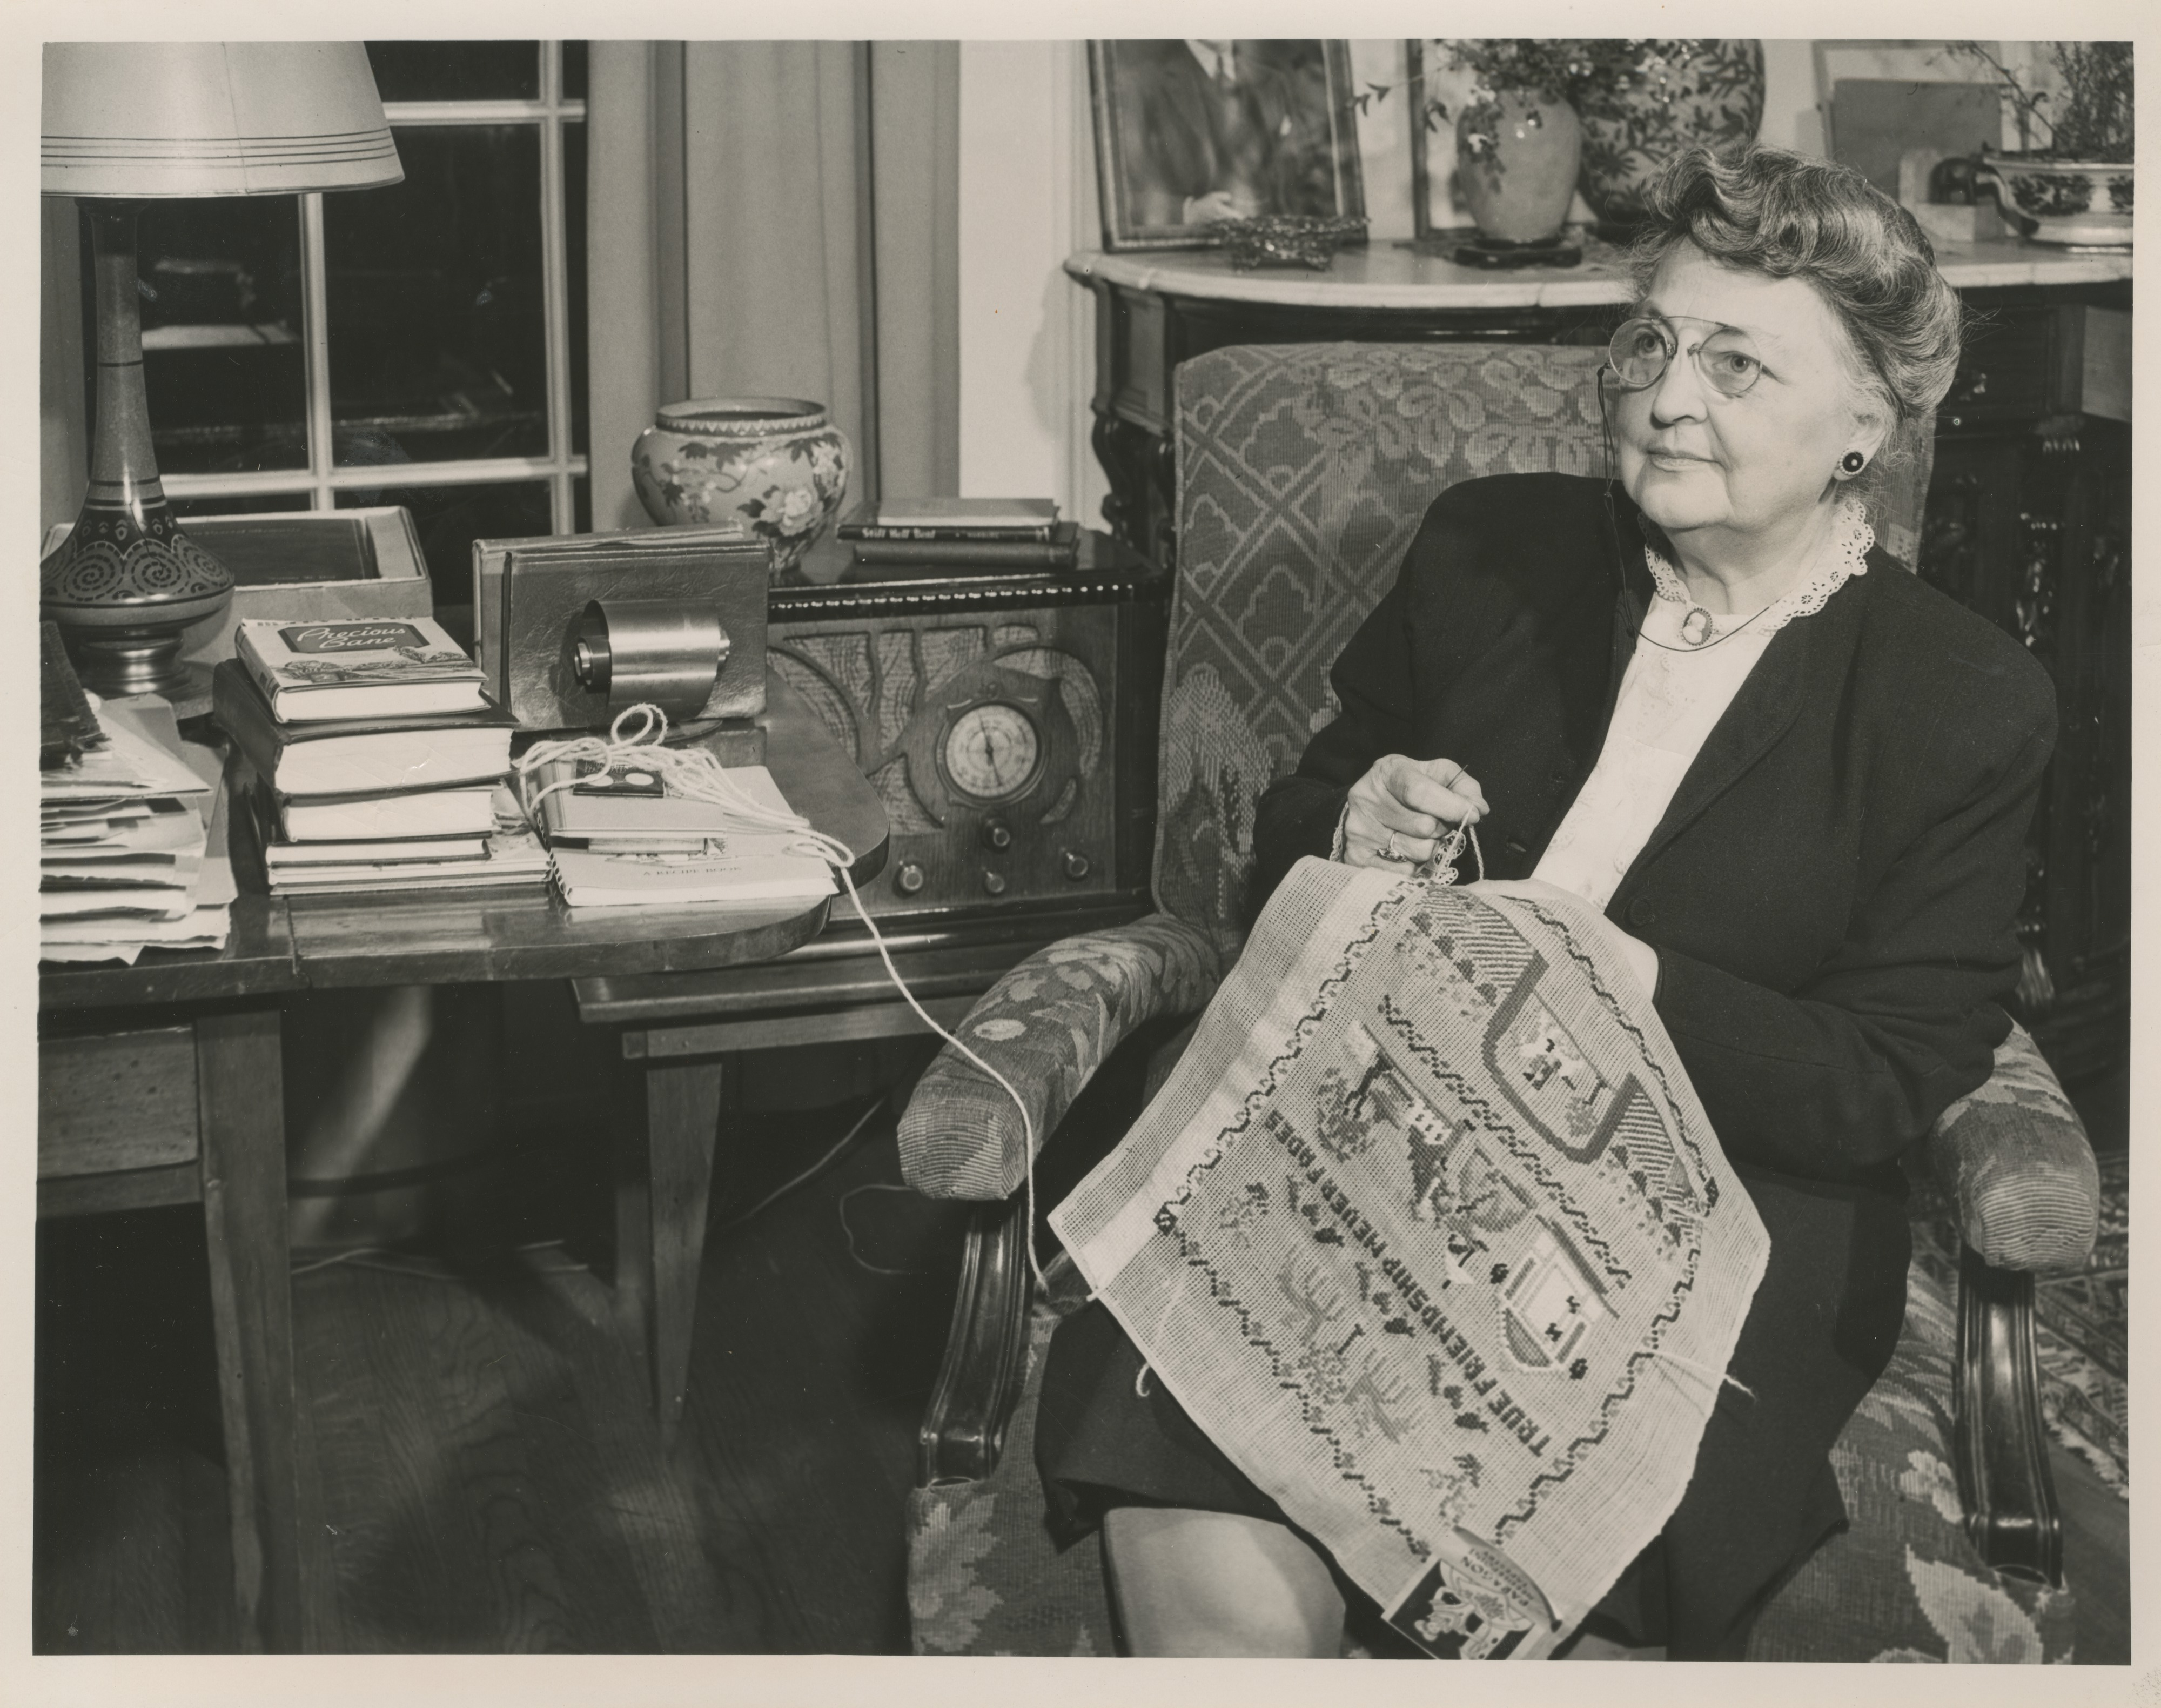 Eunice Fite Yost, 1949 image